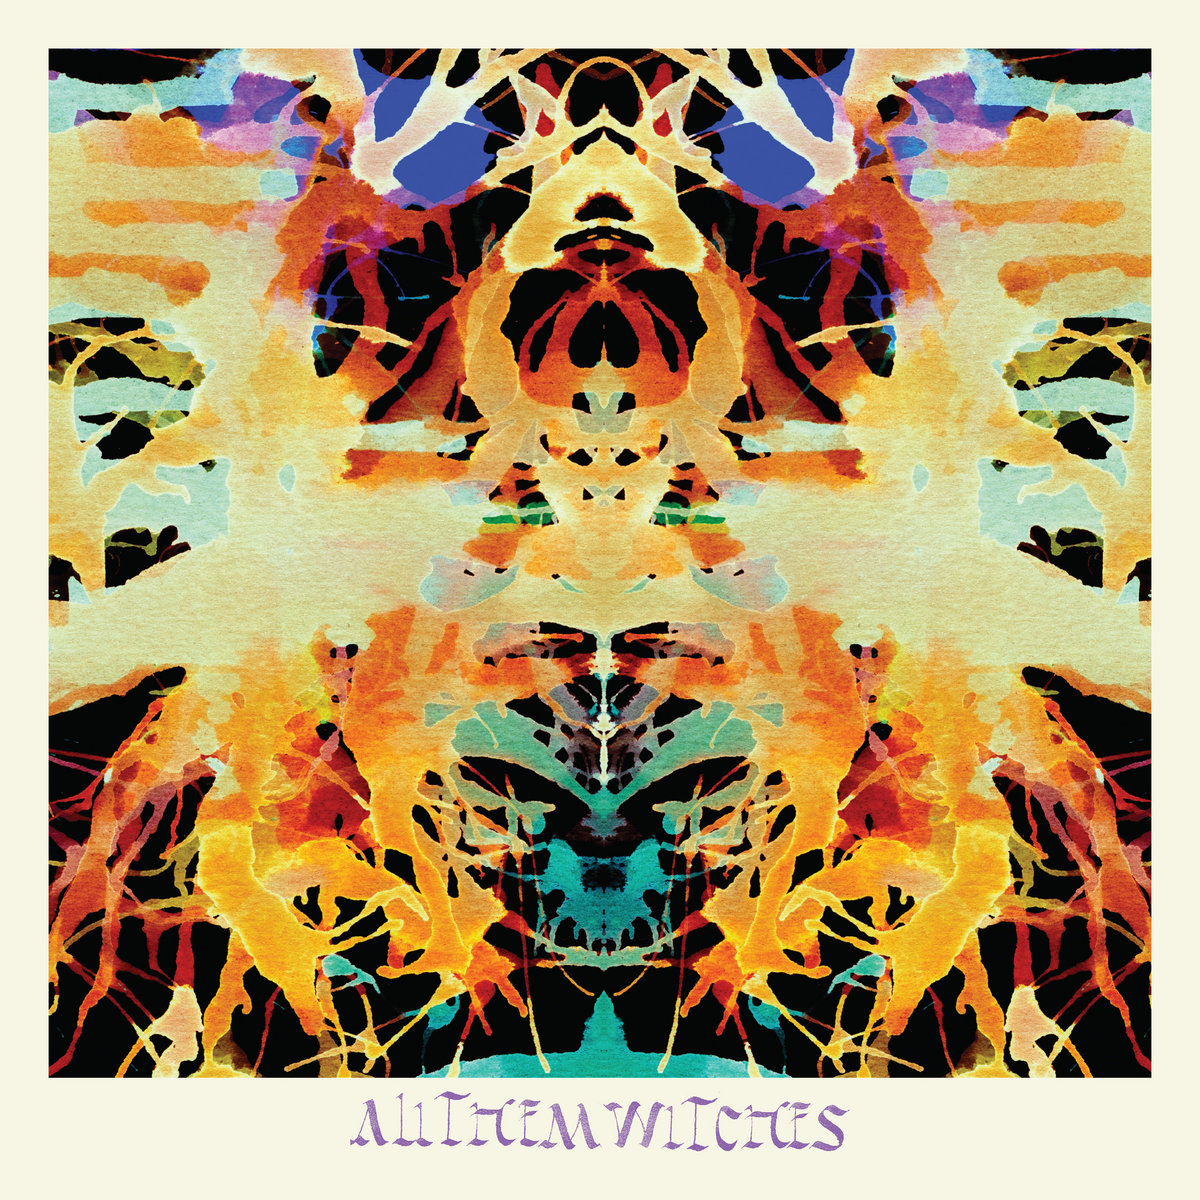 all them witches discography rar